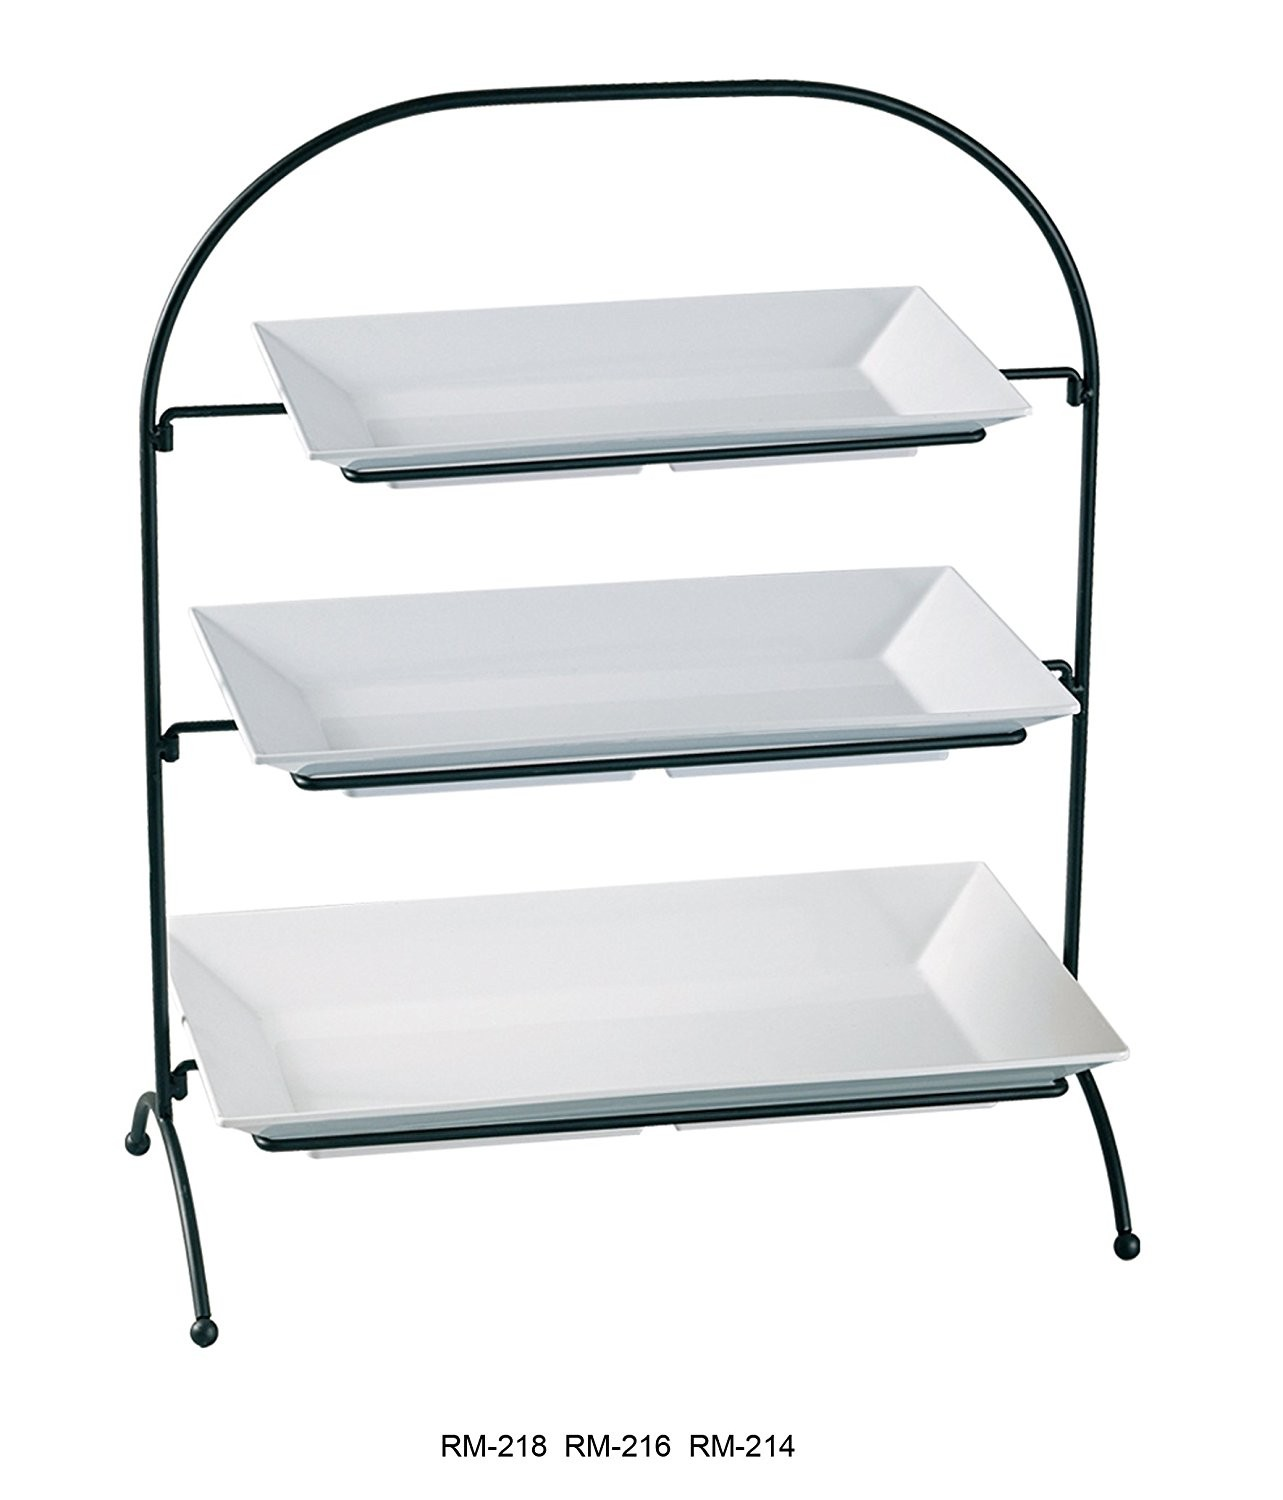 """Yanco ST-103BK Rome 3 Tier Black Display Stand 22 1/2"""" x 19"""" x 9 1/2""""for RM-212/214/218"""